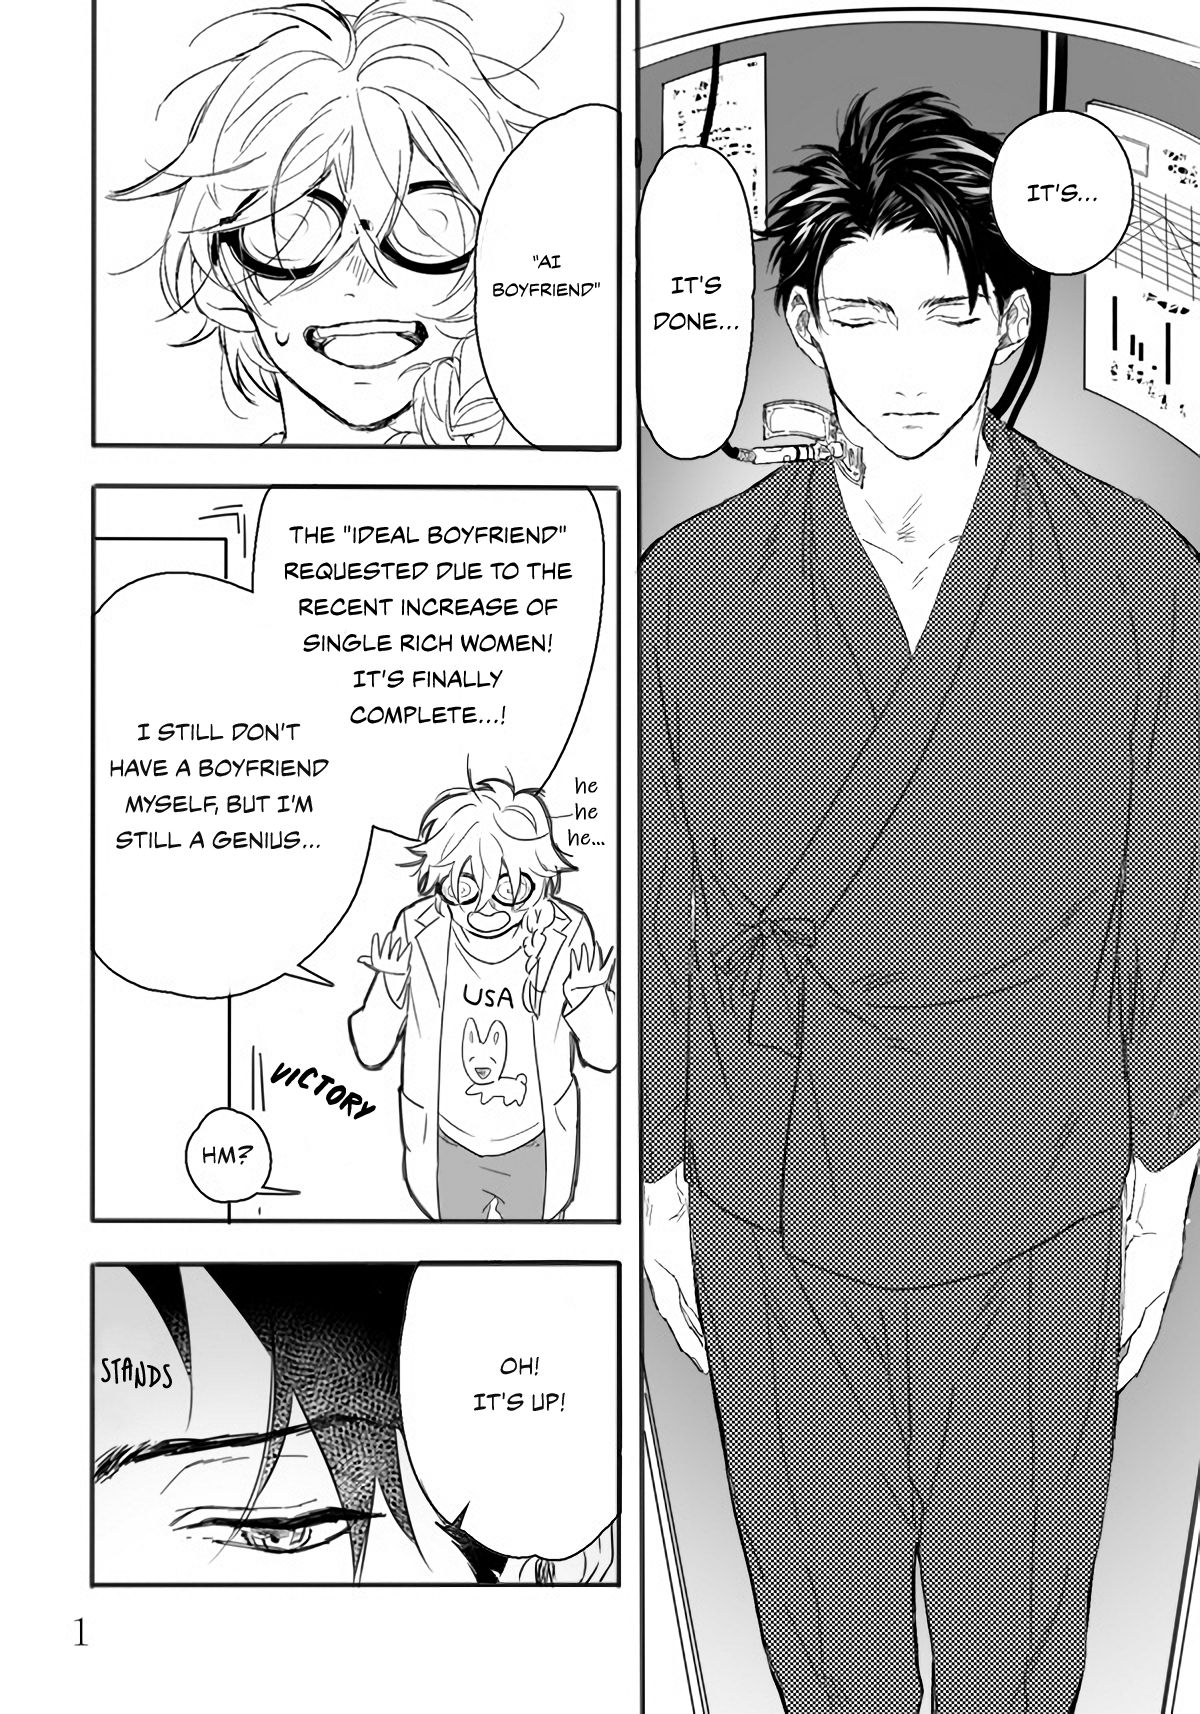 Ai Boyfriend And Unpopular Doctor - chapter 1 - #2